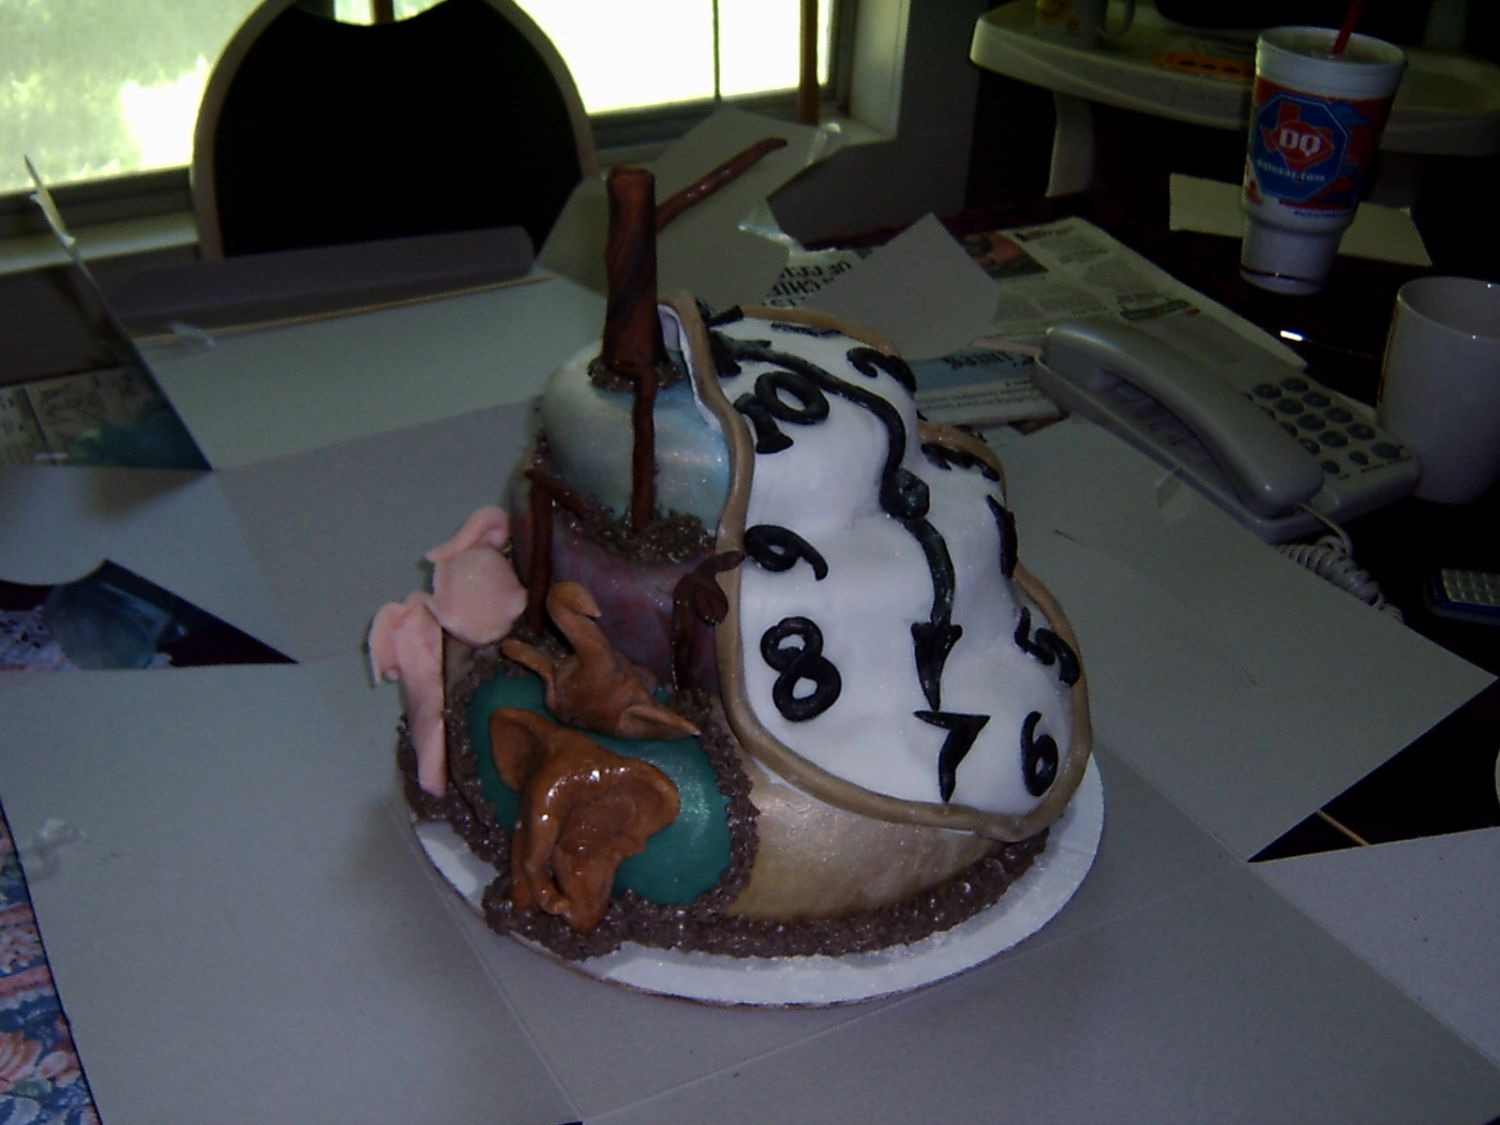 Salvador Dali Interp. I made this cake for my mom's bday. she loves the artist salvador dali it was all fondant and edible.